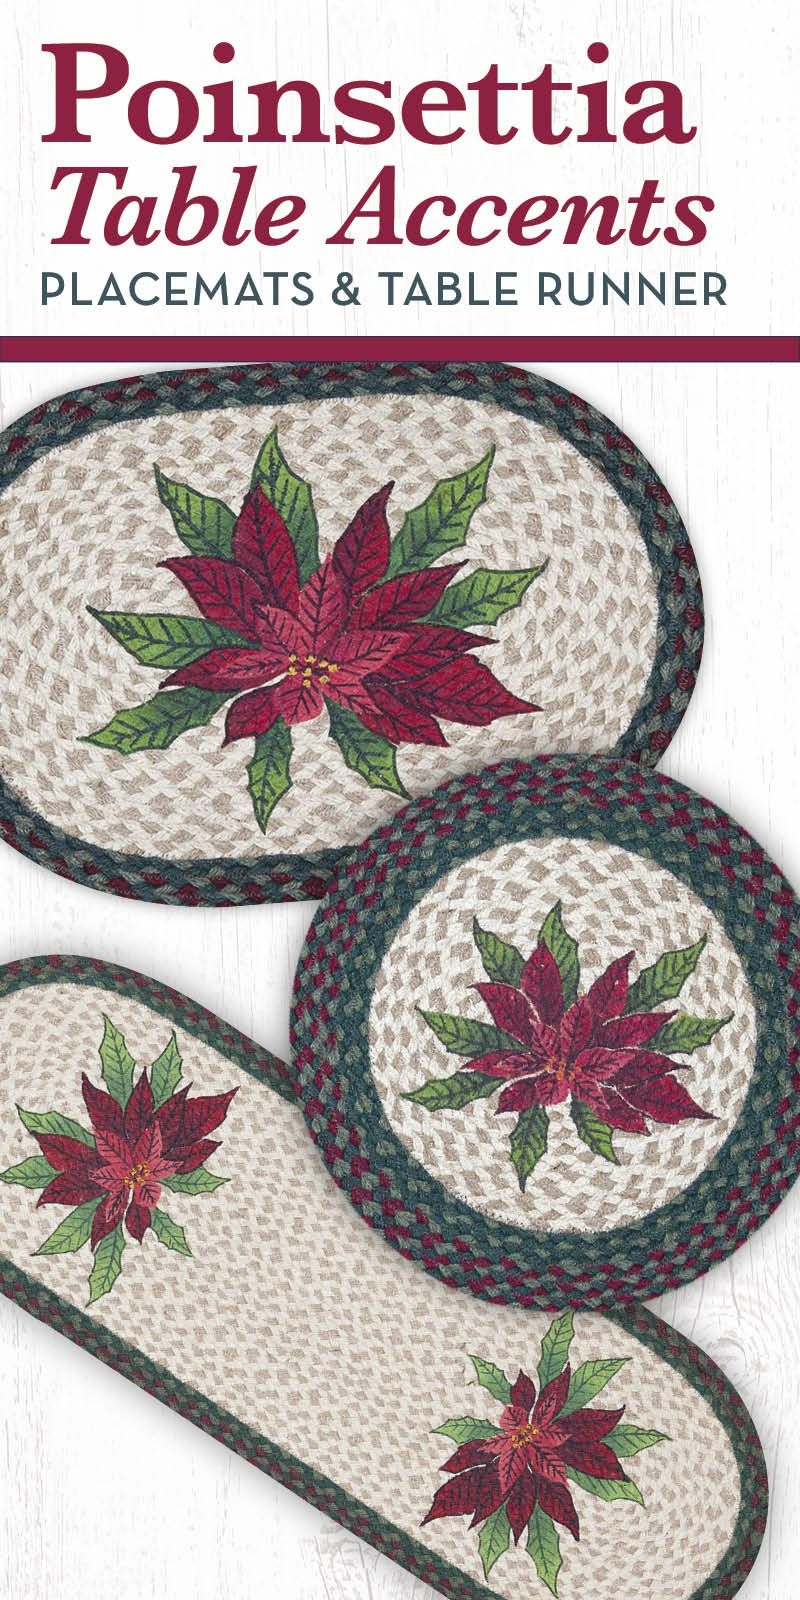 poinsettia oval table runner settings accent placemat placemats round and with design red green trim christmasdecor christmas countryliving countryhome cast aluminum side wrought